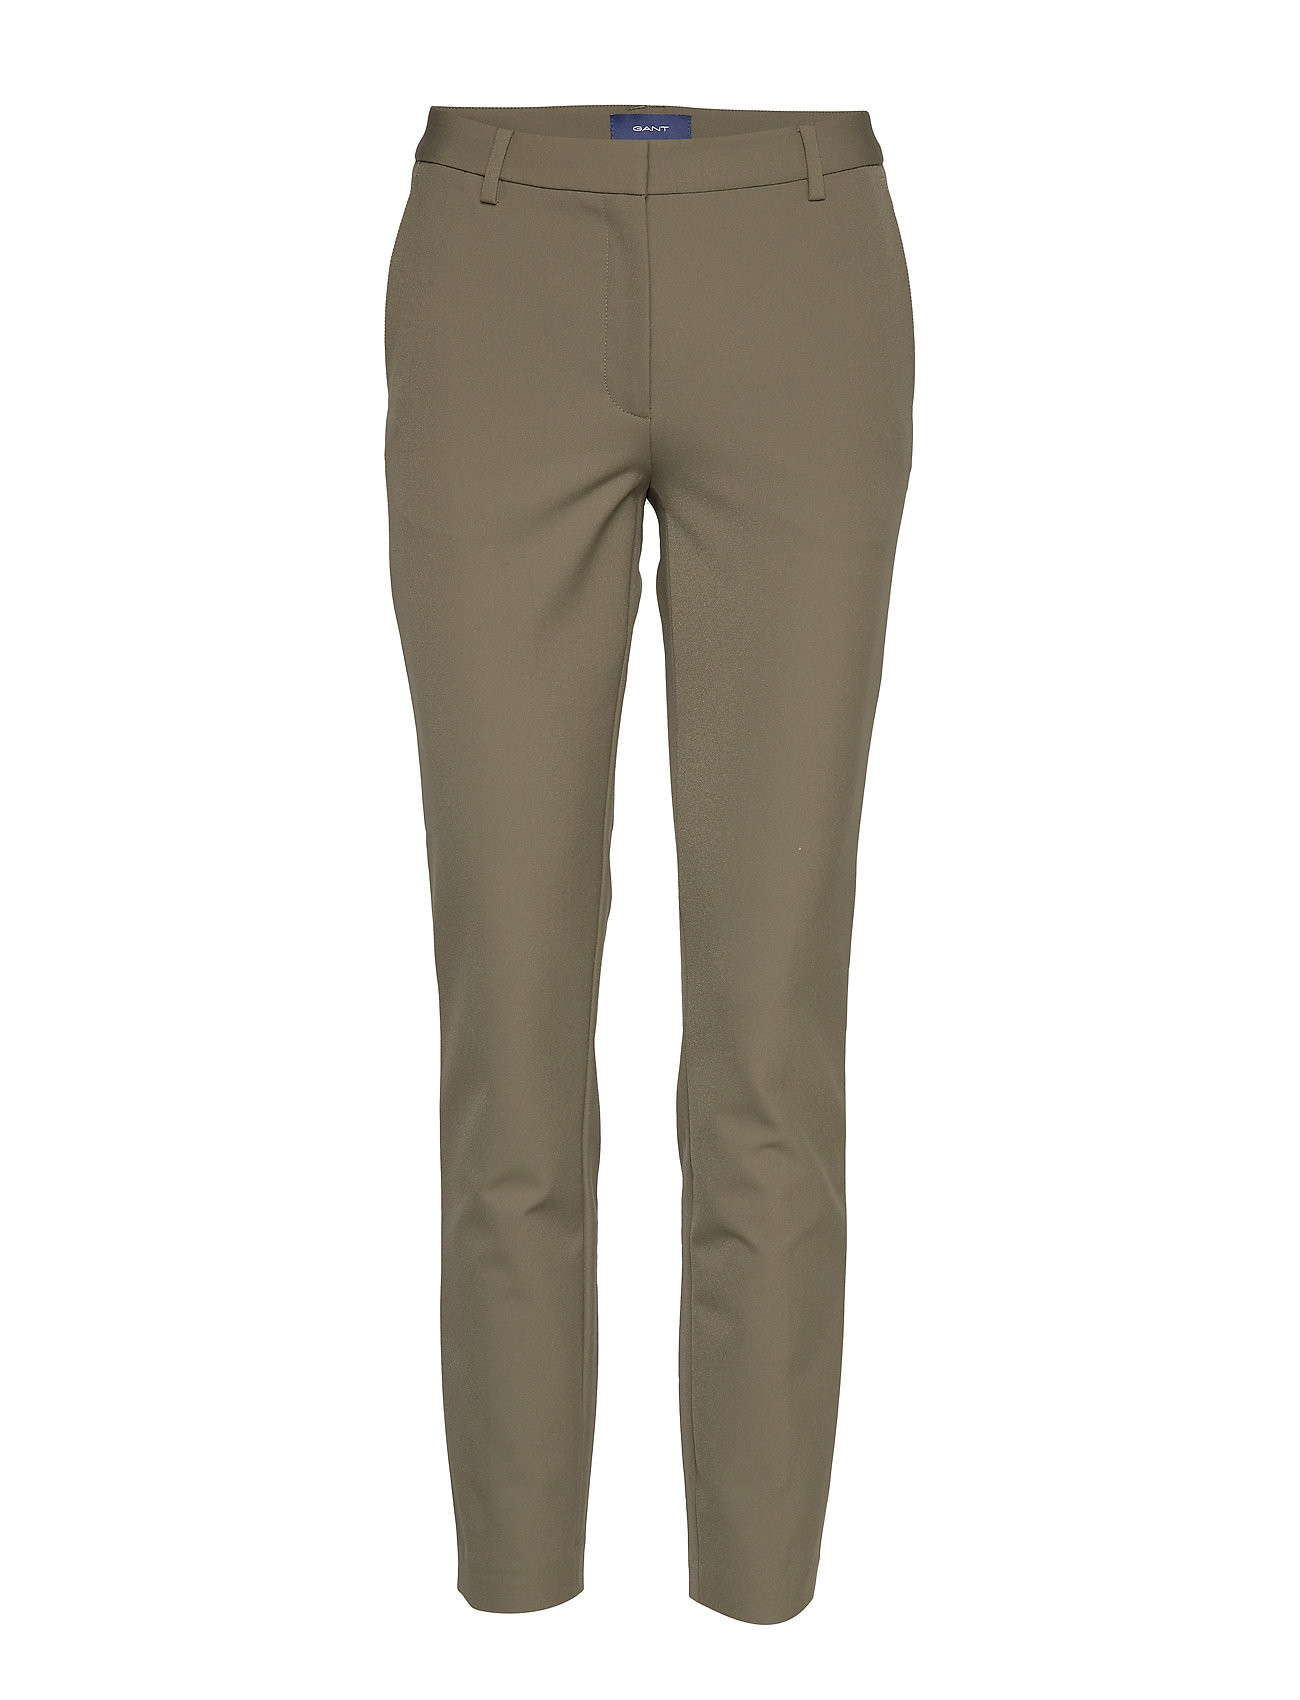 GANT D1. STRETCH TAPERED PANT - SEA TURTLE